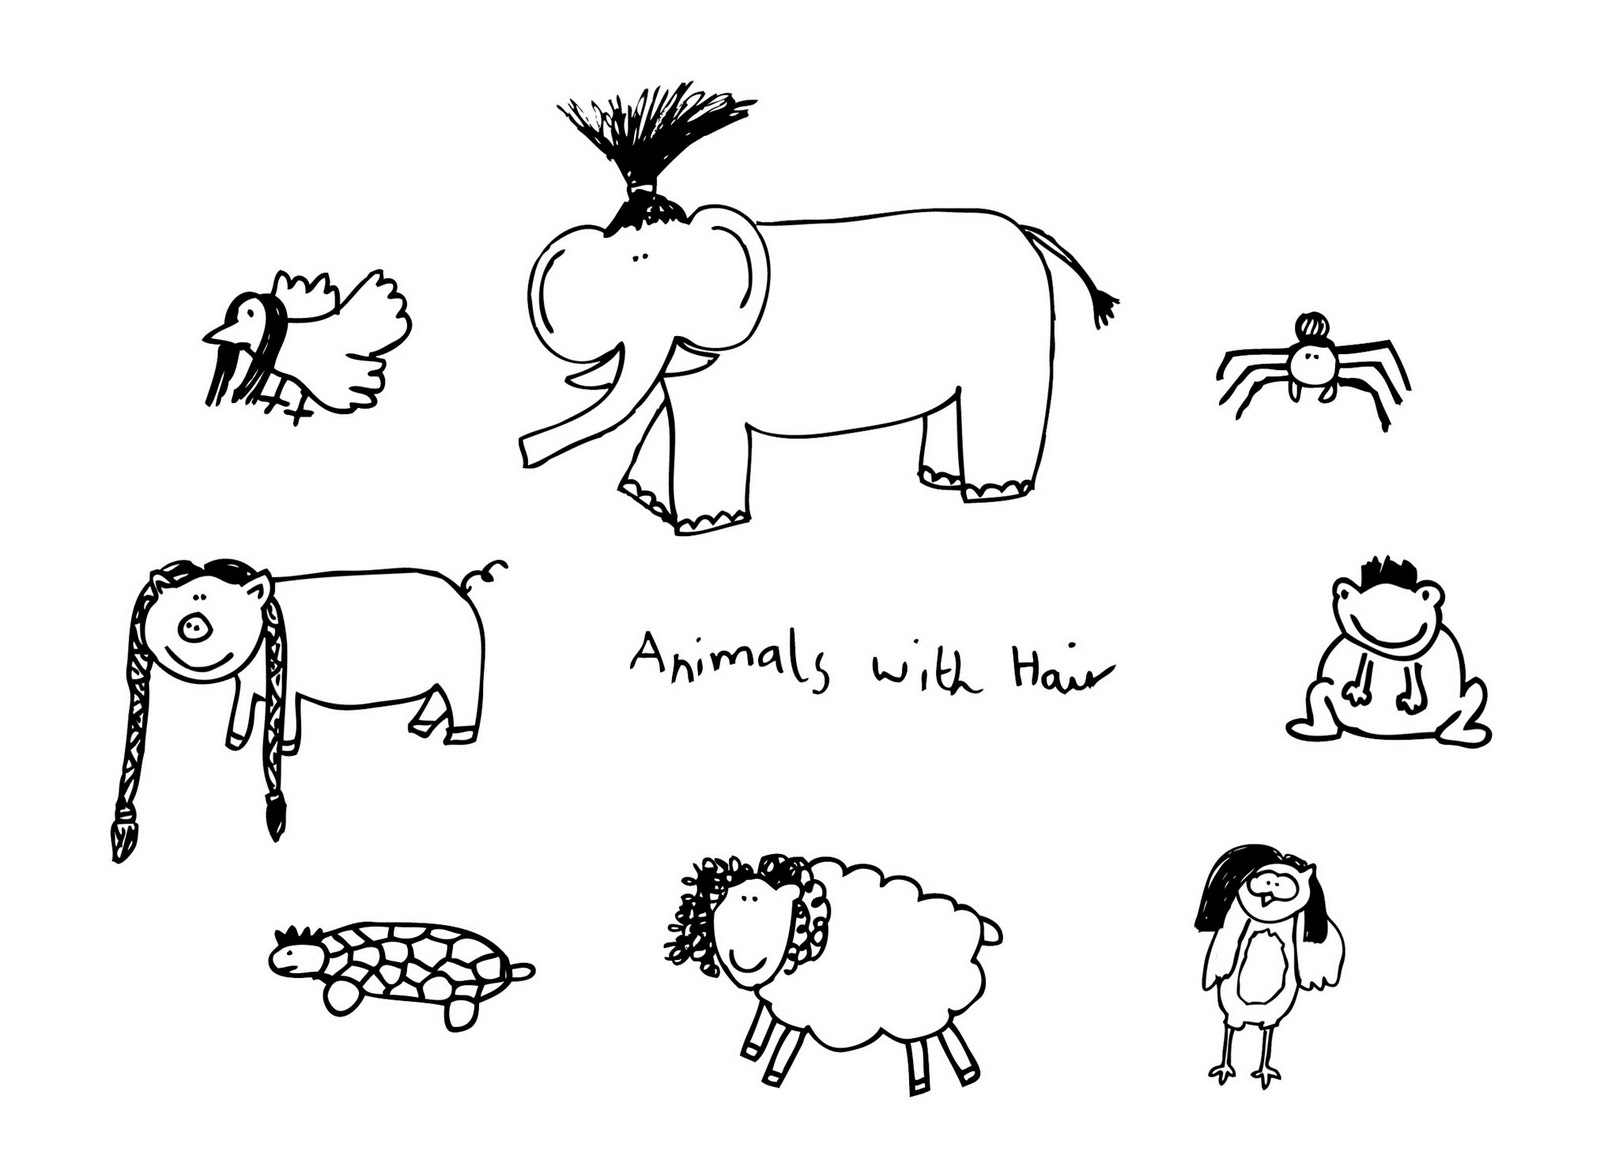 Animals With Hair